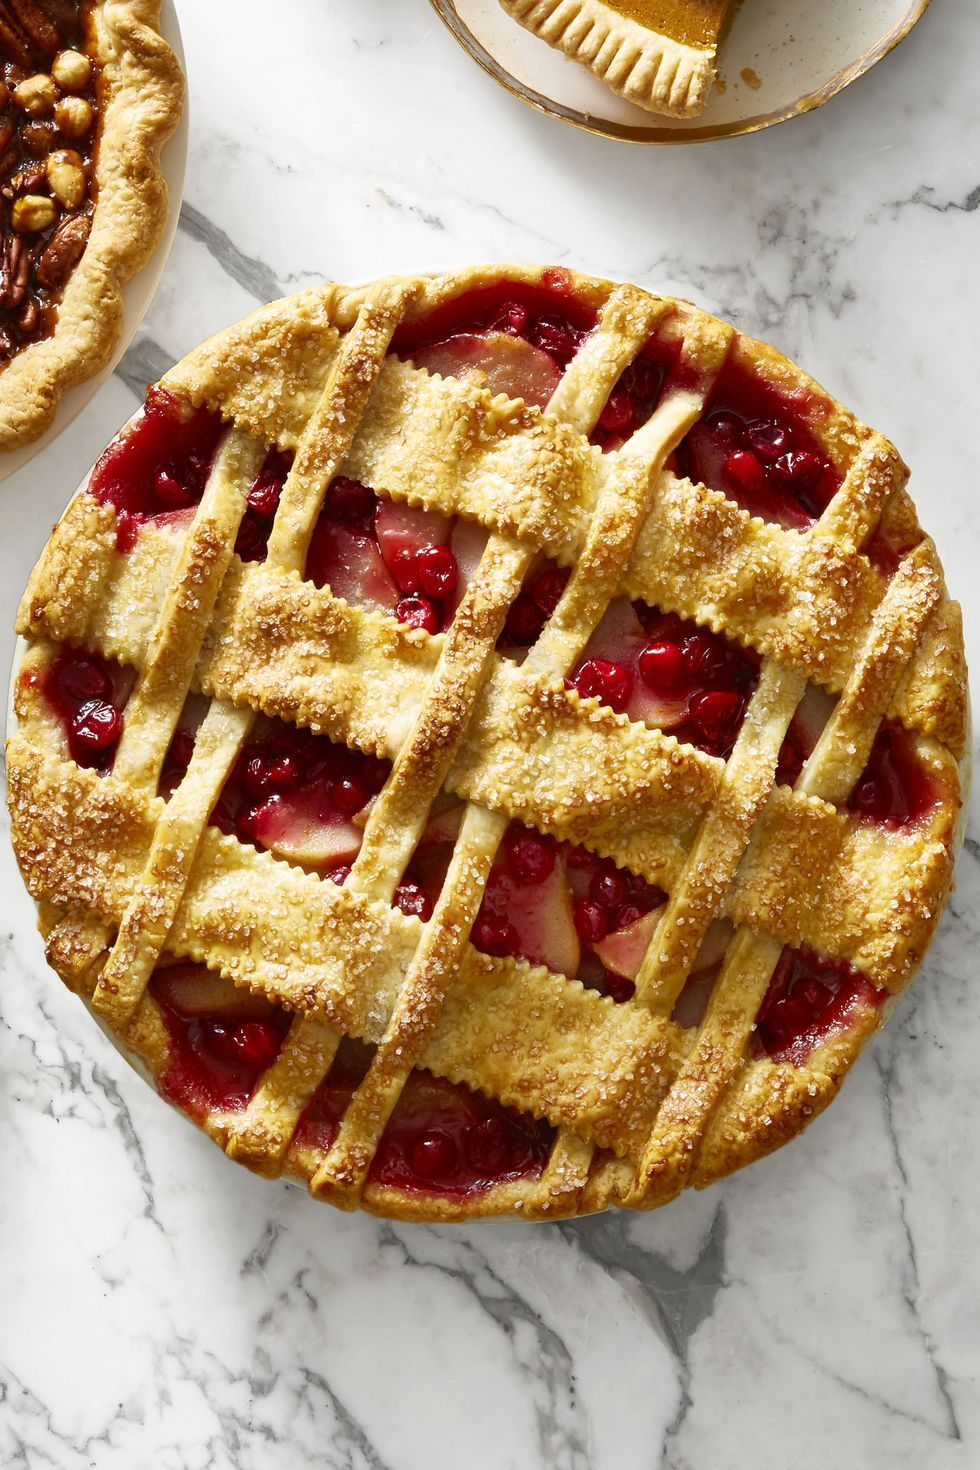 18 Easy Cranberry Dessert Ideas to Wow Your Friends